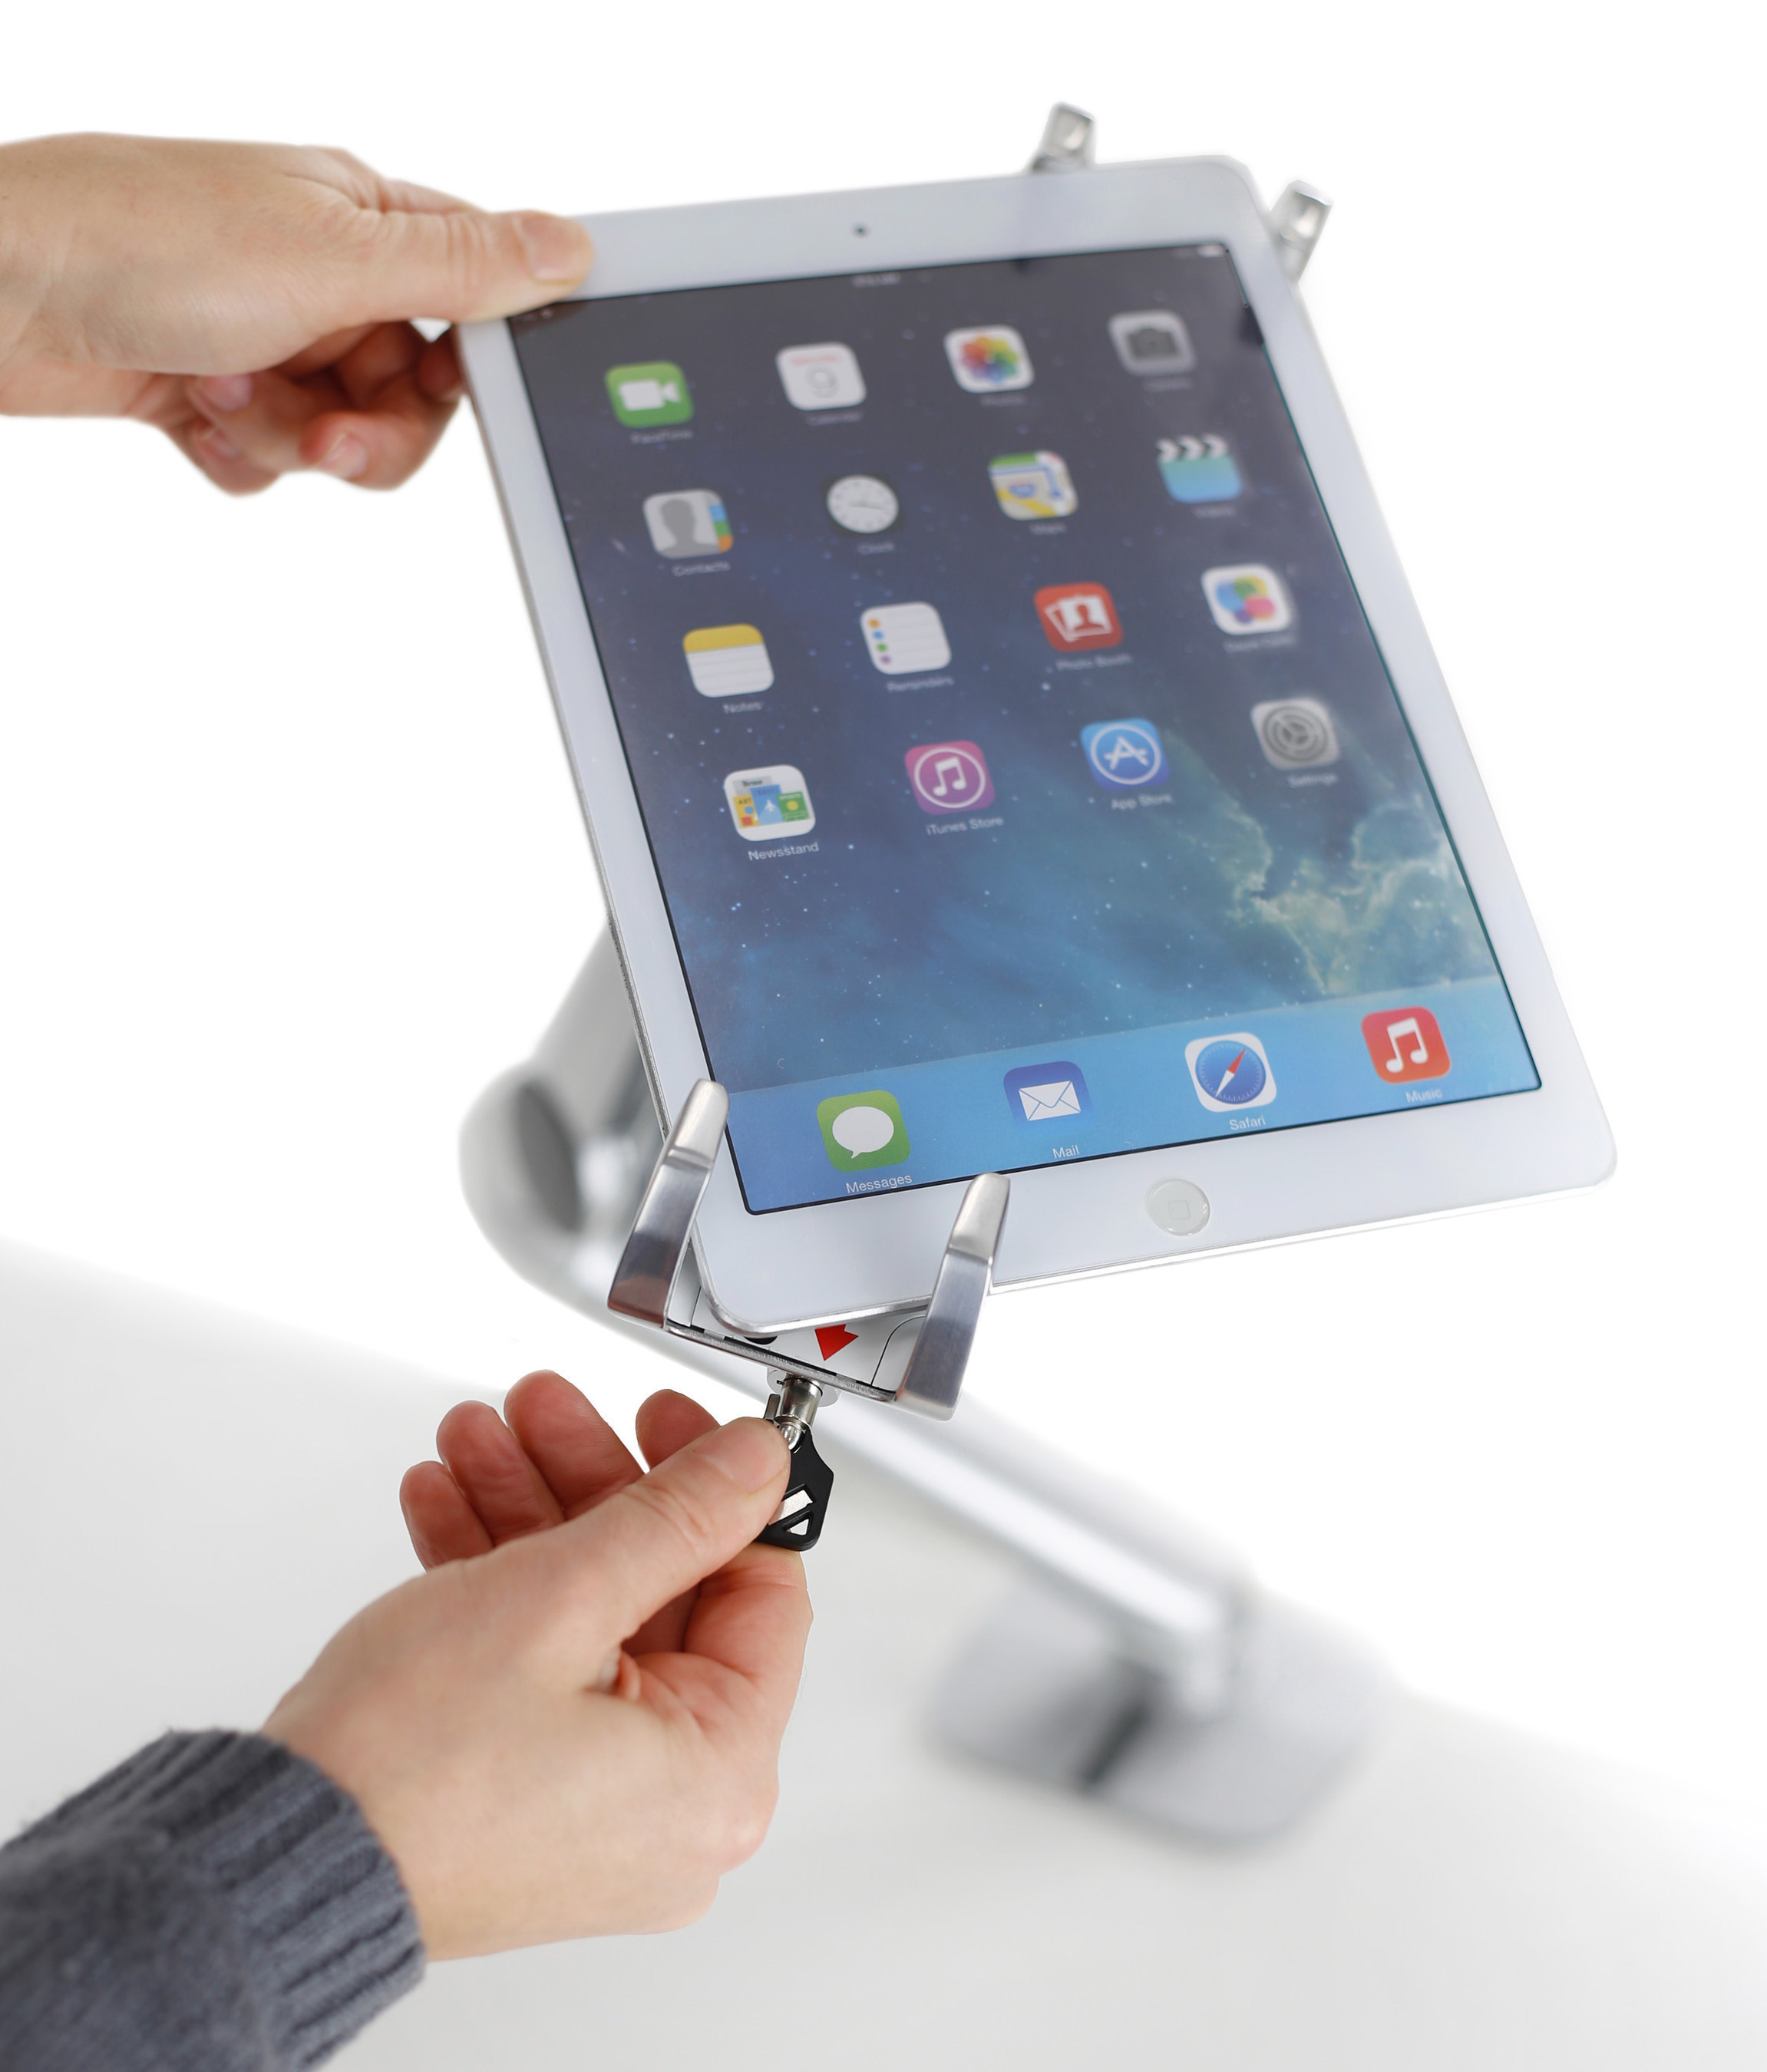 Ergotron Introduces Lockable Tablet Mount for Retail and Commercial Businesses